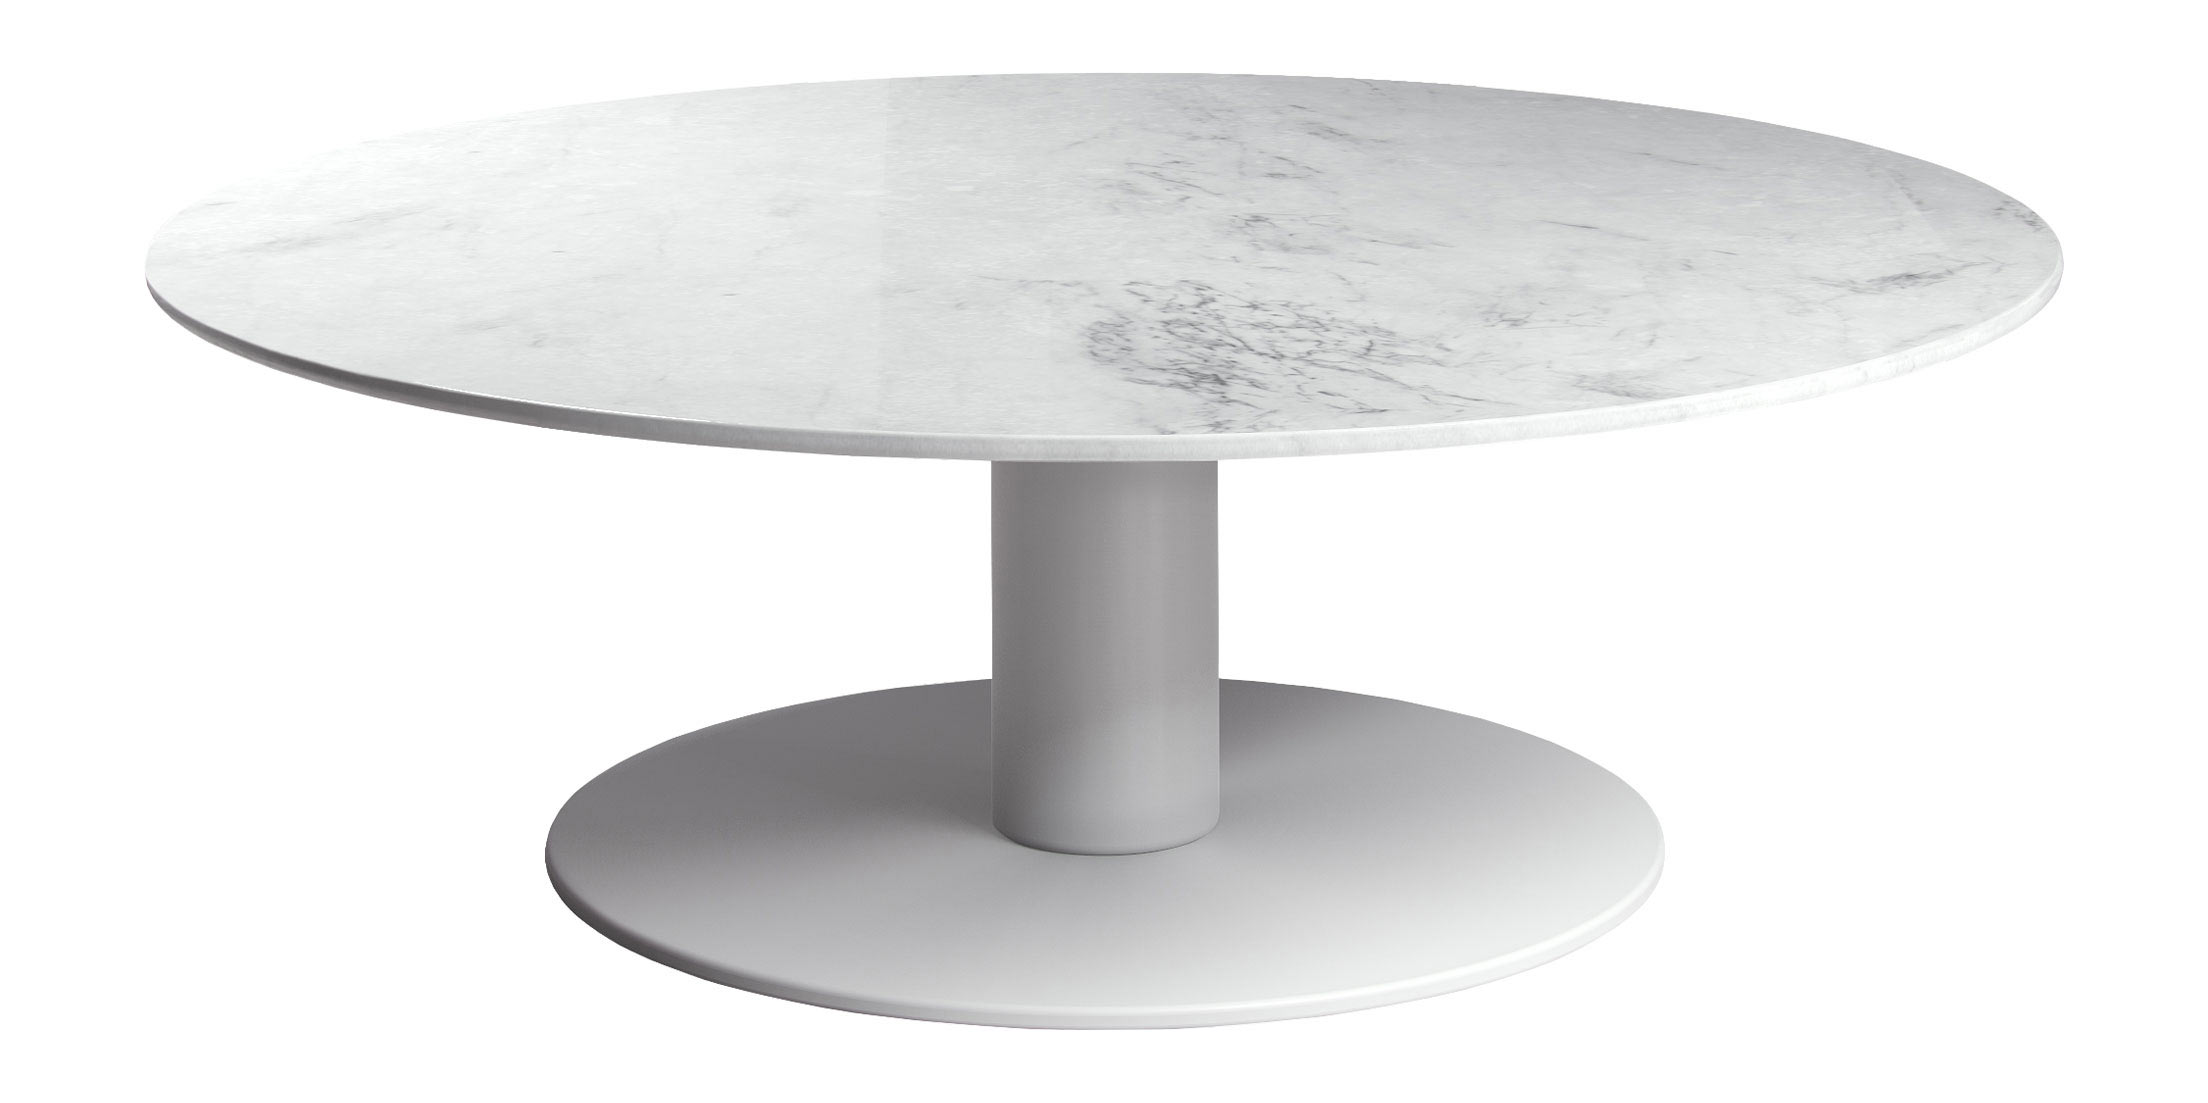 Bleecker Low Coffee Table White Marble By Modloft